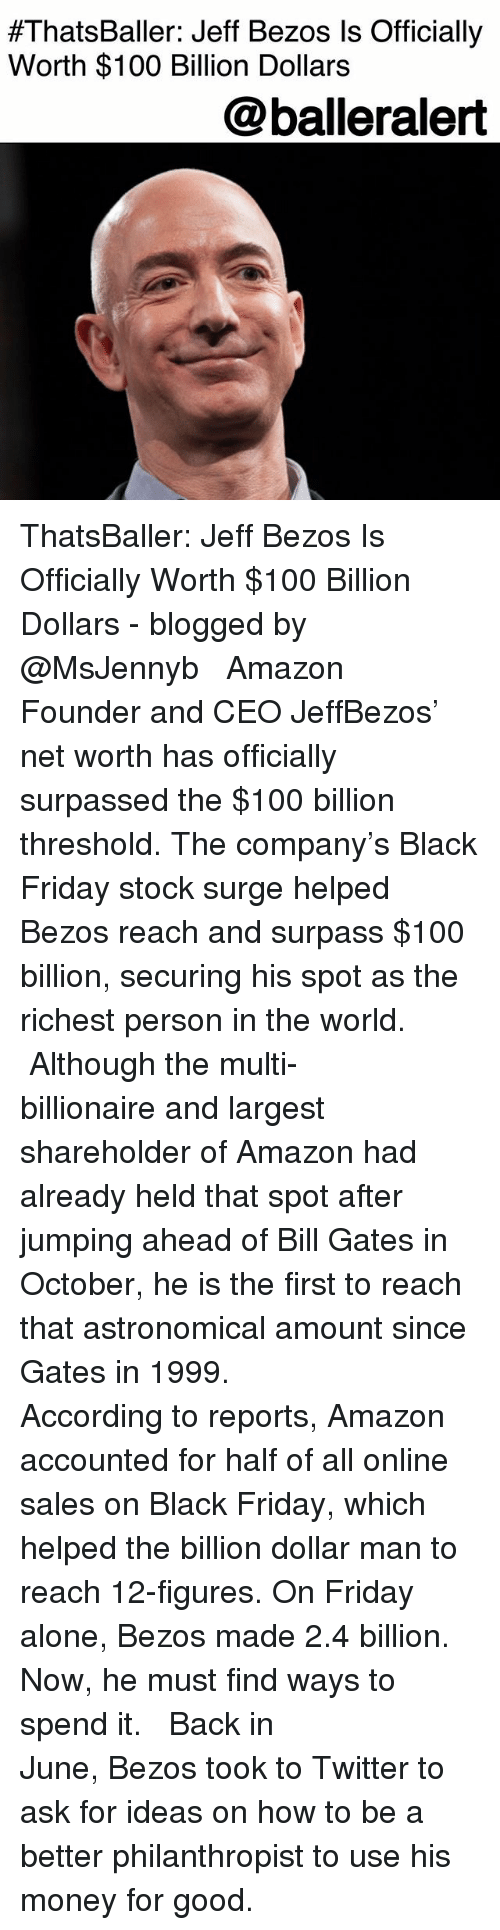 Being Alone, Amazon, and Anaconda:  #ThatsBaller: Jeff Bezos Is Officially  Worth $100 Billion Dollars  @balleralert ThatsBaller: Jeff Bezos Is Officially Worth $100 Billion Dollars - blogged by @MsJennyb ⠀⠀⠀⠀⠀⠀⠀ ⠀⠀⠀⠀⠀⠀⠀ Amazon Founder and CEO JeffBezos' net worth has officially surpassed the $100 billion threshold. The company's Black Friday stock surge helped Bezos reach and surpass $100 billion, securing his spot as the richest person in the world. ⠀⠀⠀⠀⠀⠀⠀ ⠀⠀⠀⠀⠀⠀⠀ Although the multi-billionaire and largest shareholder of Amazon had already held that spot after jumping ahead of Bill Gates in October, he is the first to reach that astronomical amount since Gates in 1999. ⠀⠀⠀⠀⠀⠀⠀ ⠀⠀⠀⠀⠀⠀⠀ According to reports, Amazon accounted for half of all online sales on Black Friday, which helped the billion dollar man to reach 12-figures. On Friday alone, Bezos made 2.4 billion. Now, he must find ways to spend it. ⠀⠀⠀⠀⠀⠀⠀ ⠀⠀⠀⠀⠀⠀⠀ Back in June, Bezos took to Twitter to ask for ideas on how to be a better philanthropist to use his money for good.